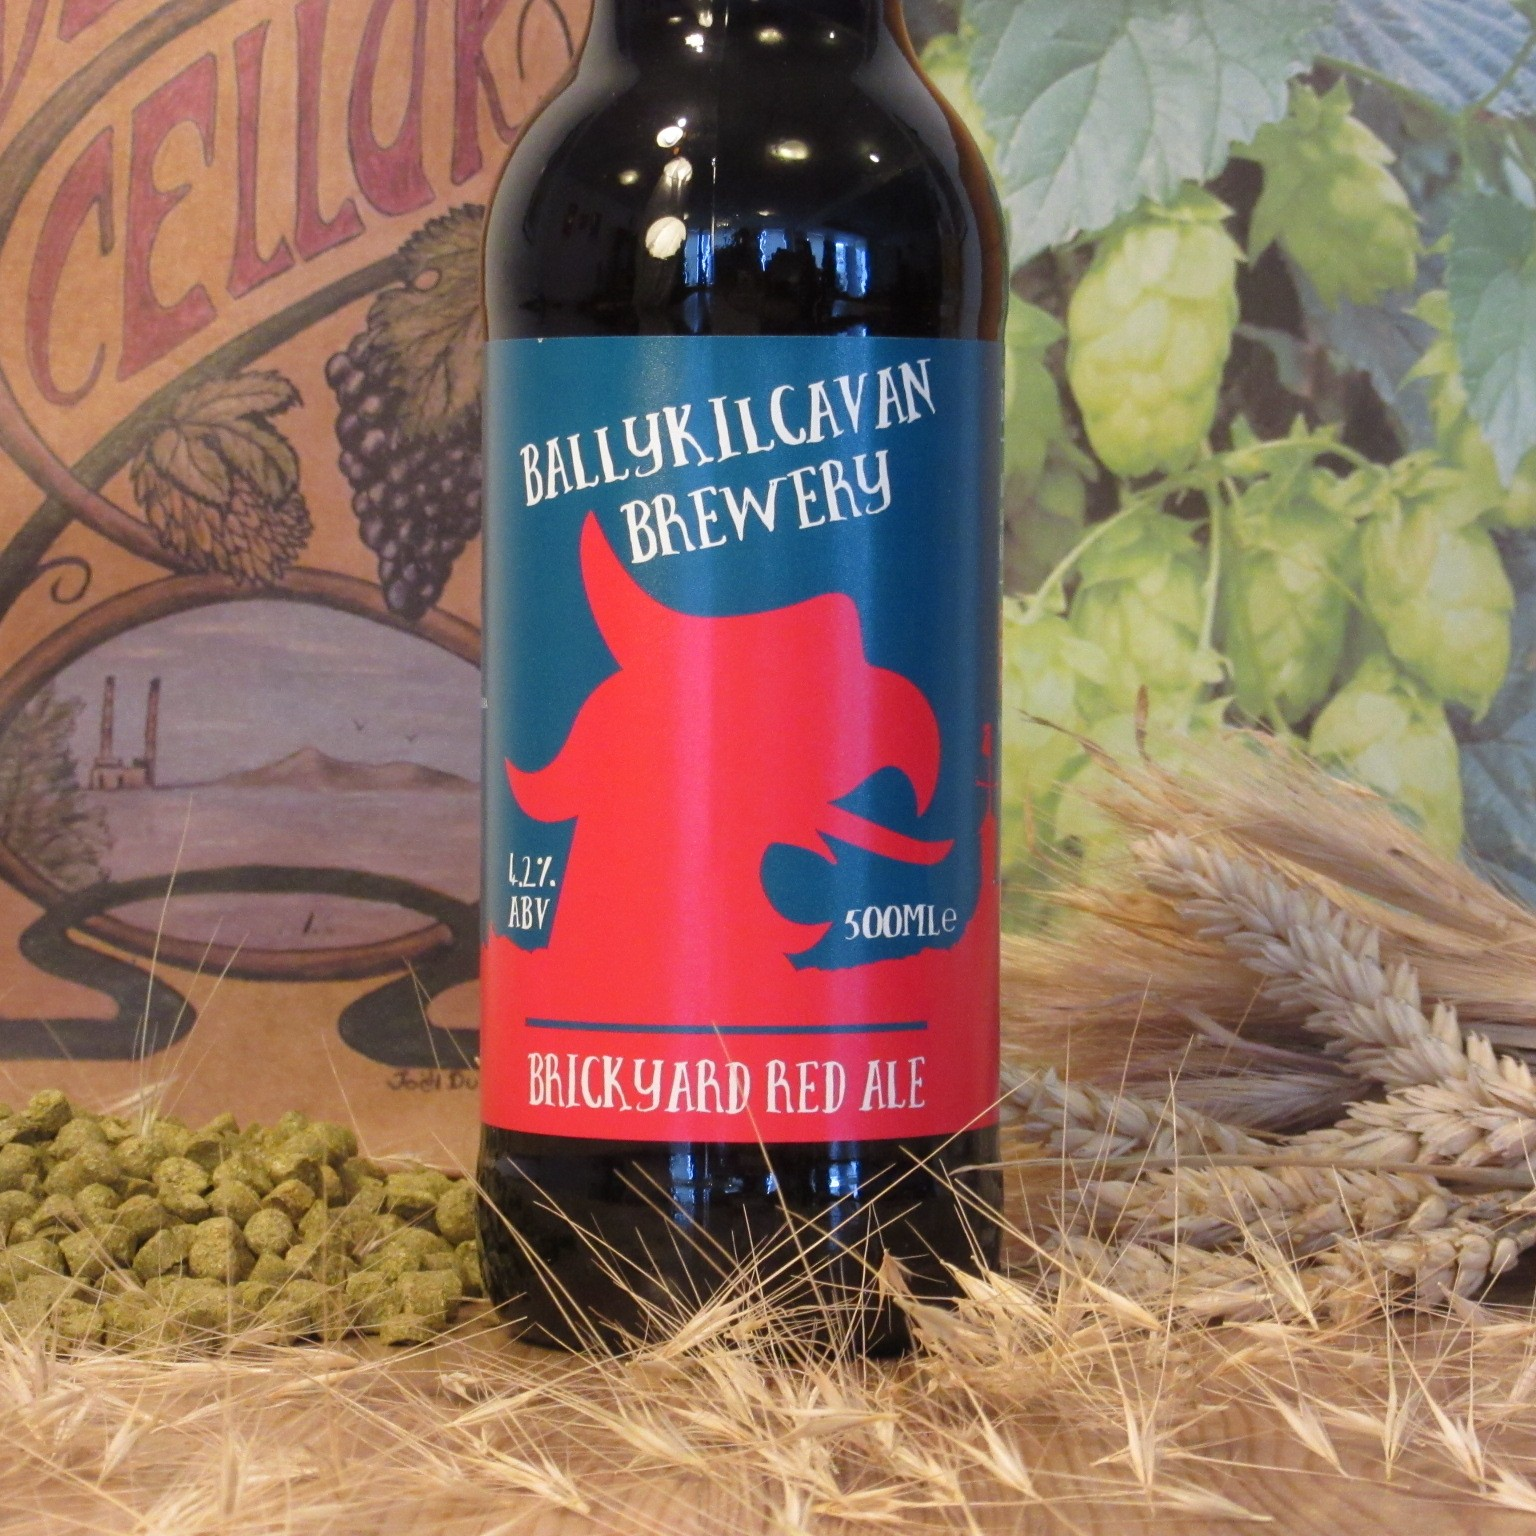 Ballykilcavan Brickyard Red Ale